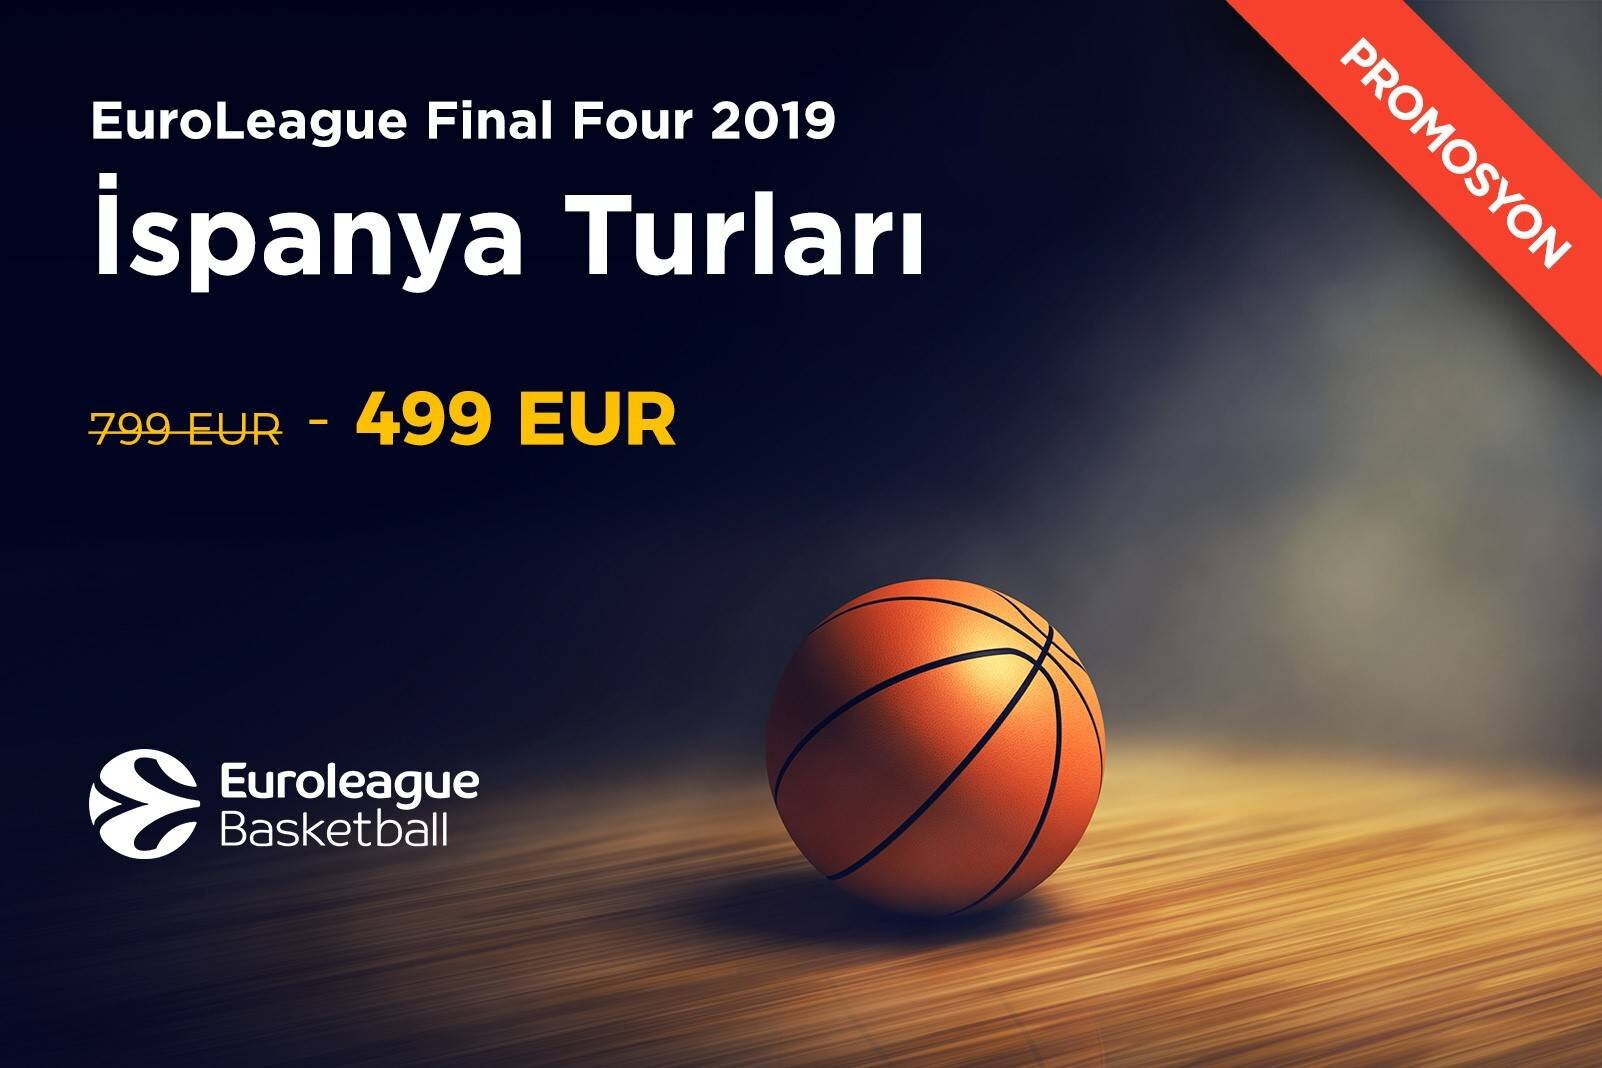 EuroLeague Final Four 2019